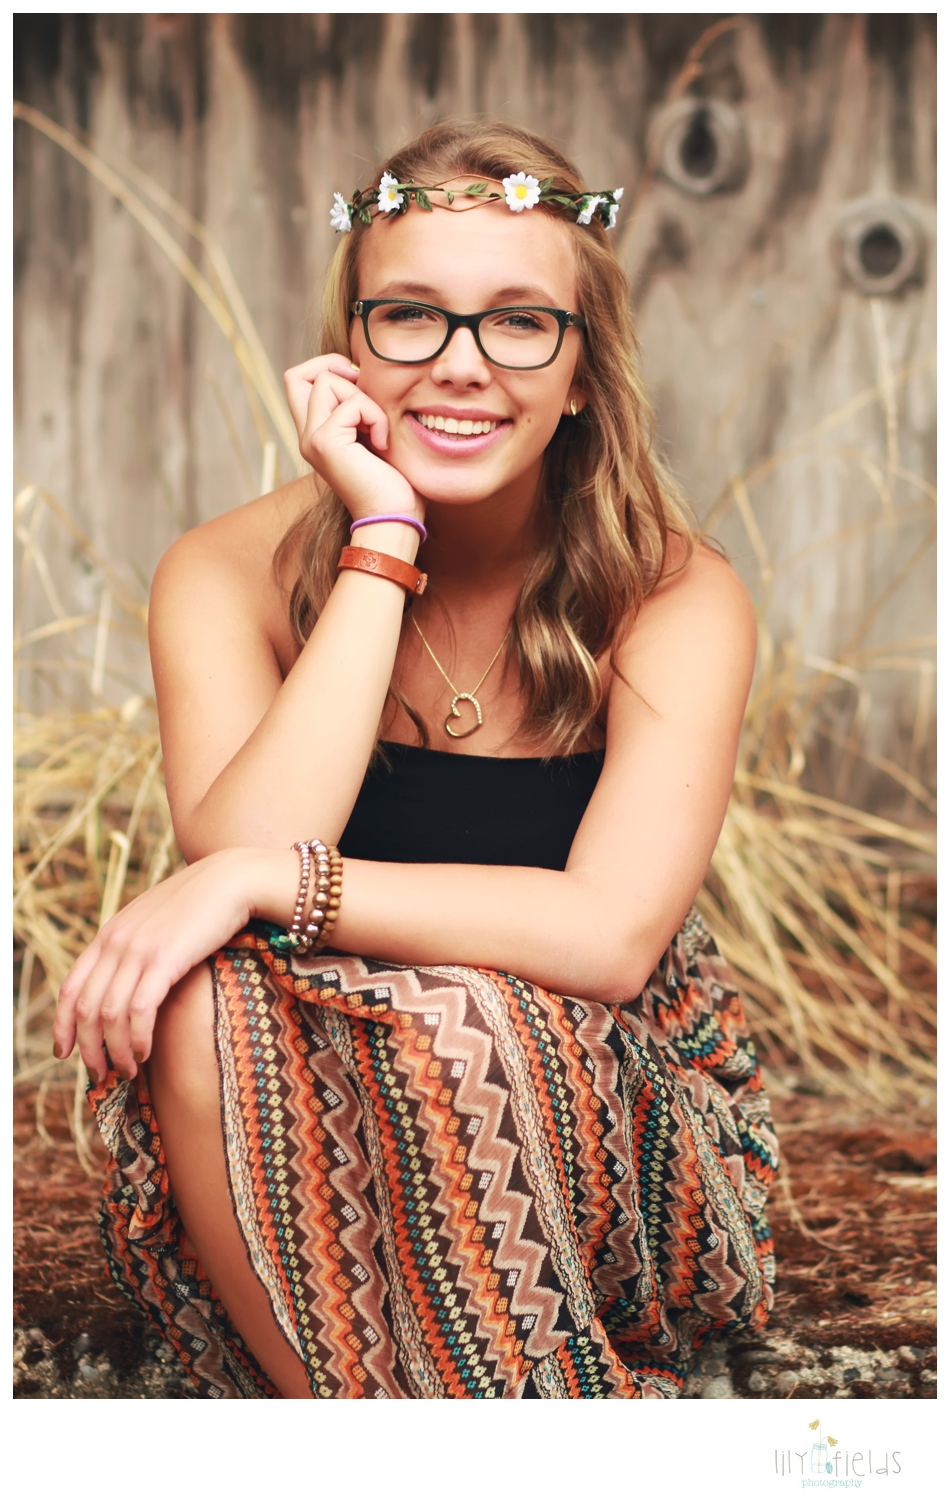 pisgah senior singles Pisgah's best 100% free jewish dating site find jewish dates at mingle2's personals for pisgah this free jewish dating site contains thousands of jewish singles create a free personal ad and start dating online today.